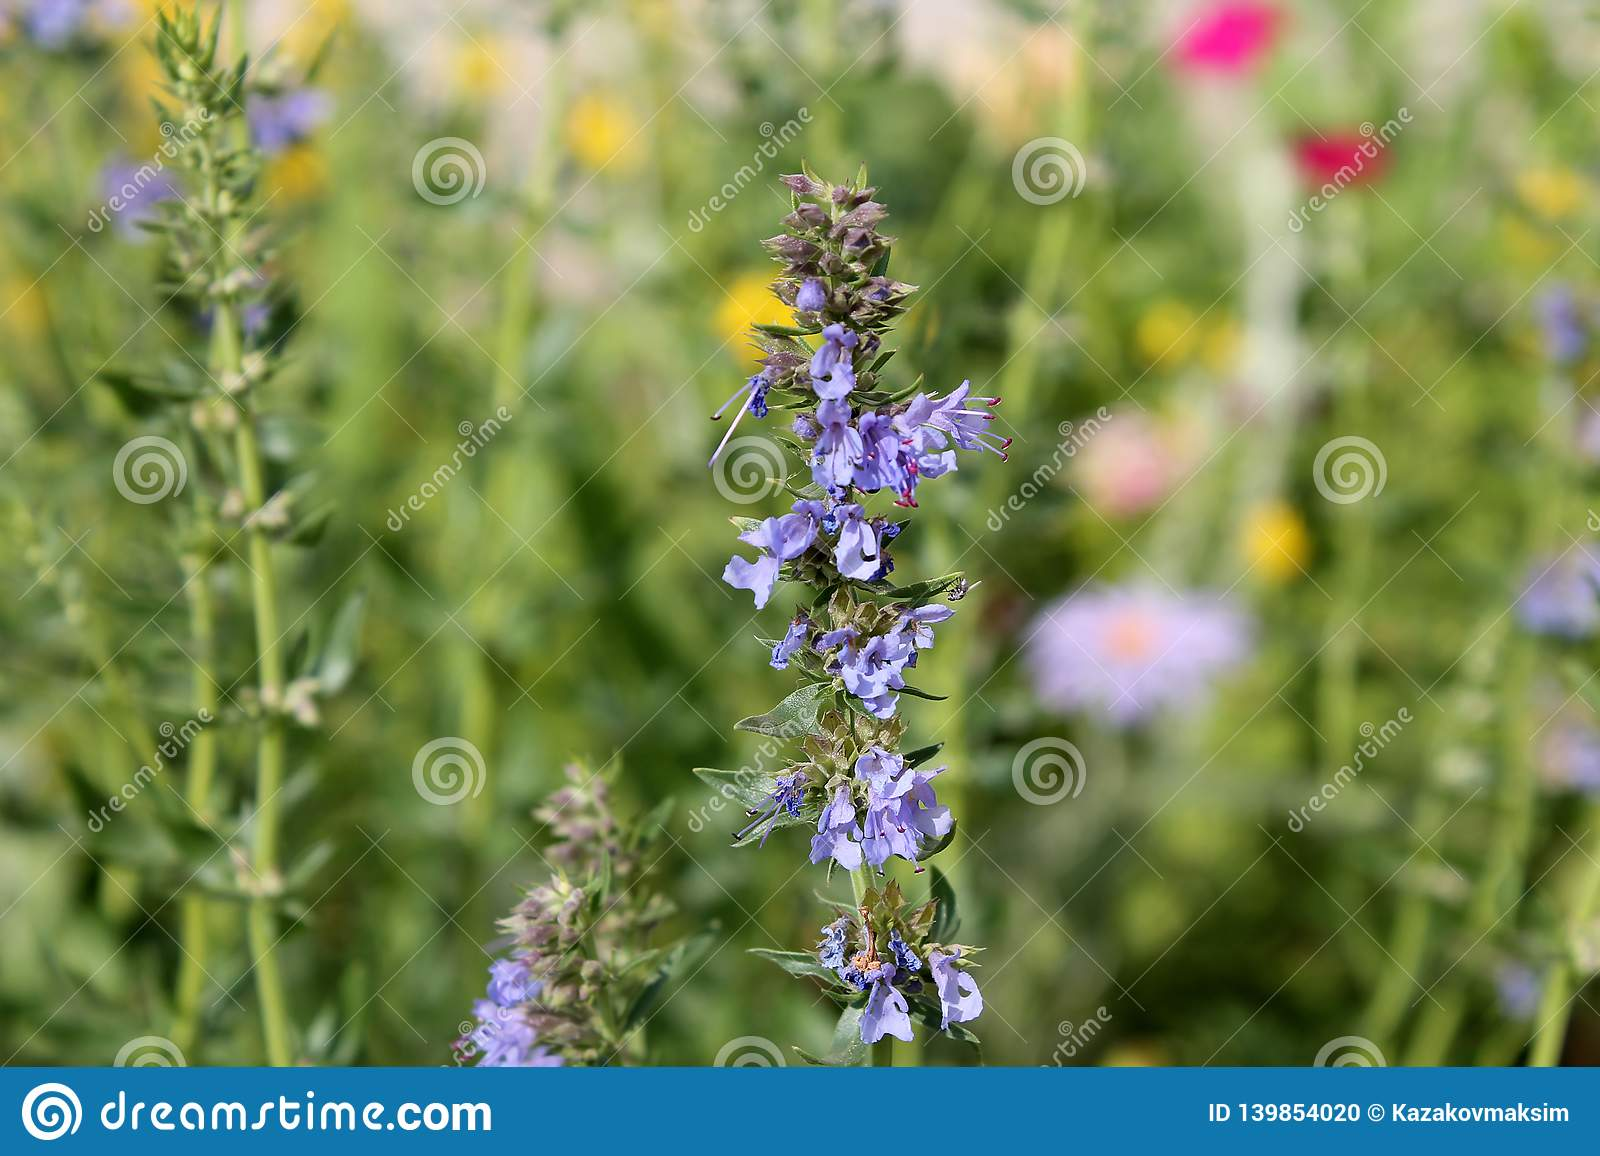 Blue hyssop or Hyssopus officinalis. Flowering plant